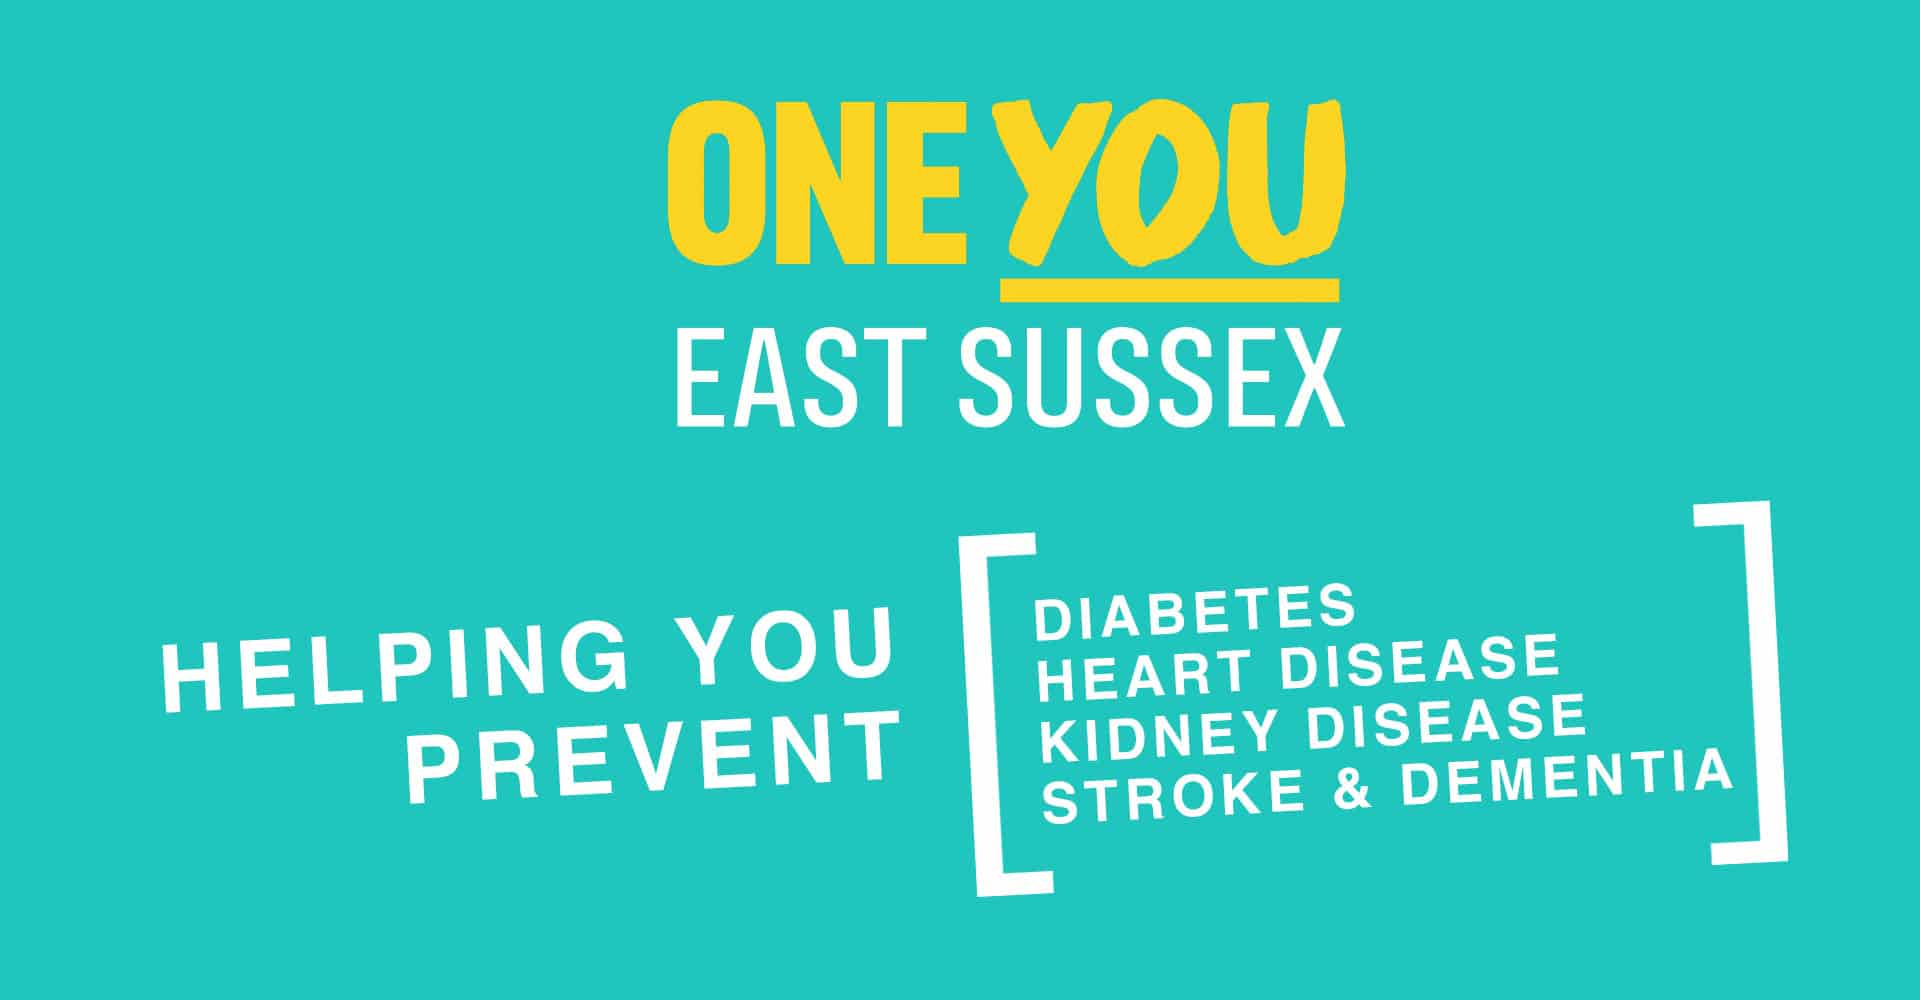 One You Free Health Checks in Sussex